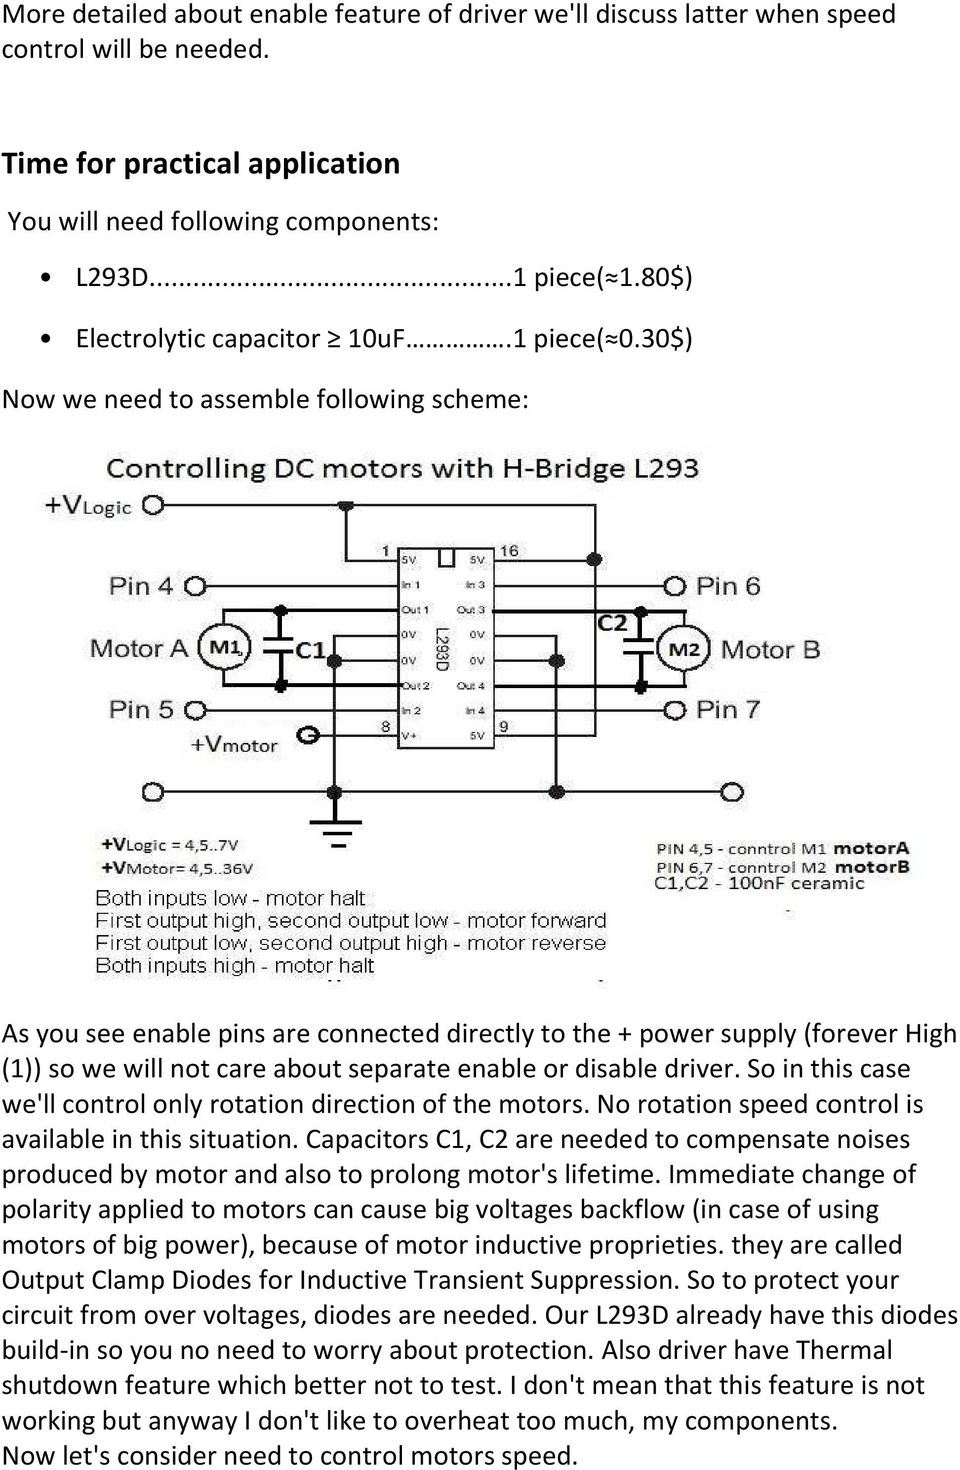 Dc Motors Direction And Speed Control Byroman Pdf Is The Bidirectional Motor Circuit Which Allows Forward Reverse 30 Now We Need To Assemble Following Scheme As You See Enable Pins